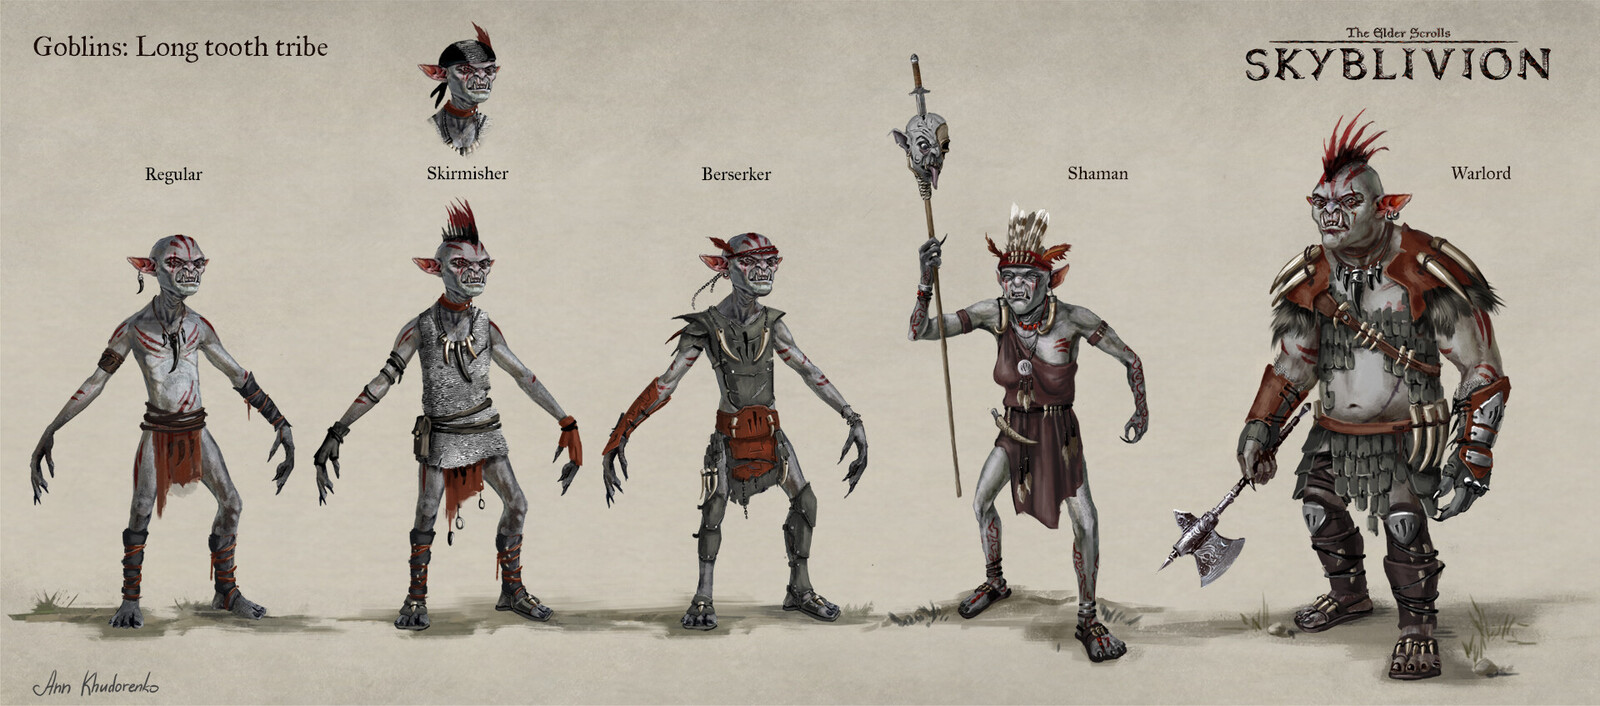 Goblins:Longtooth tribe